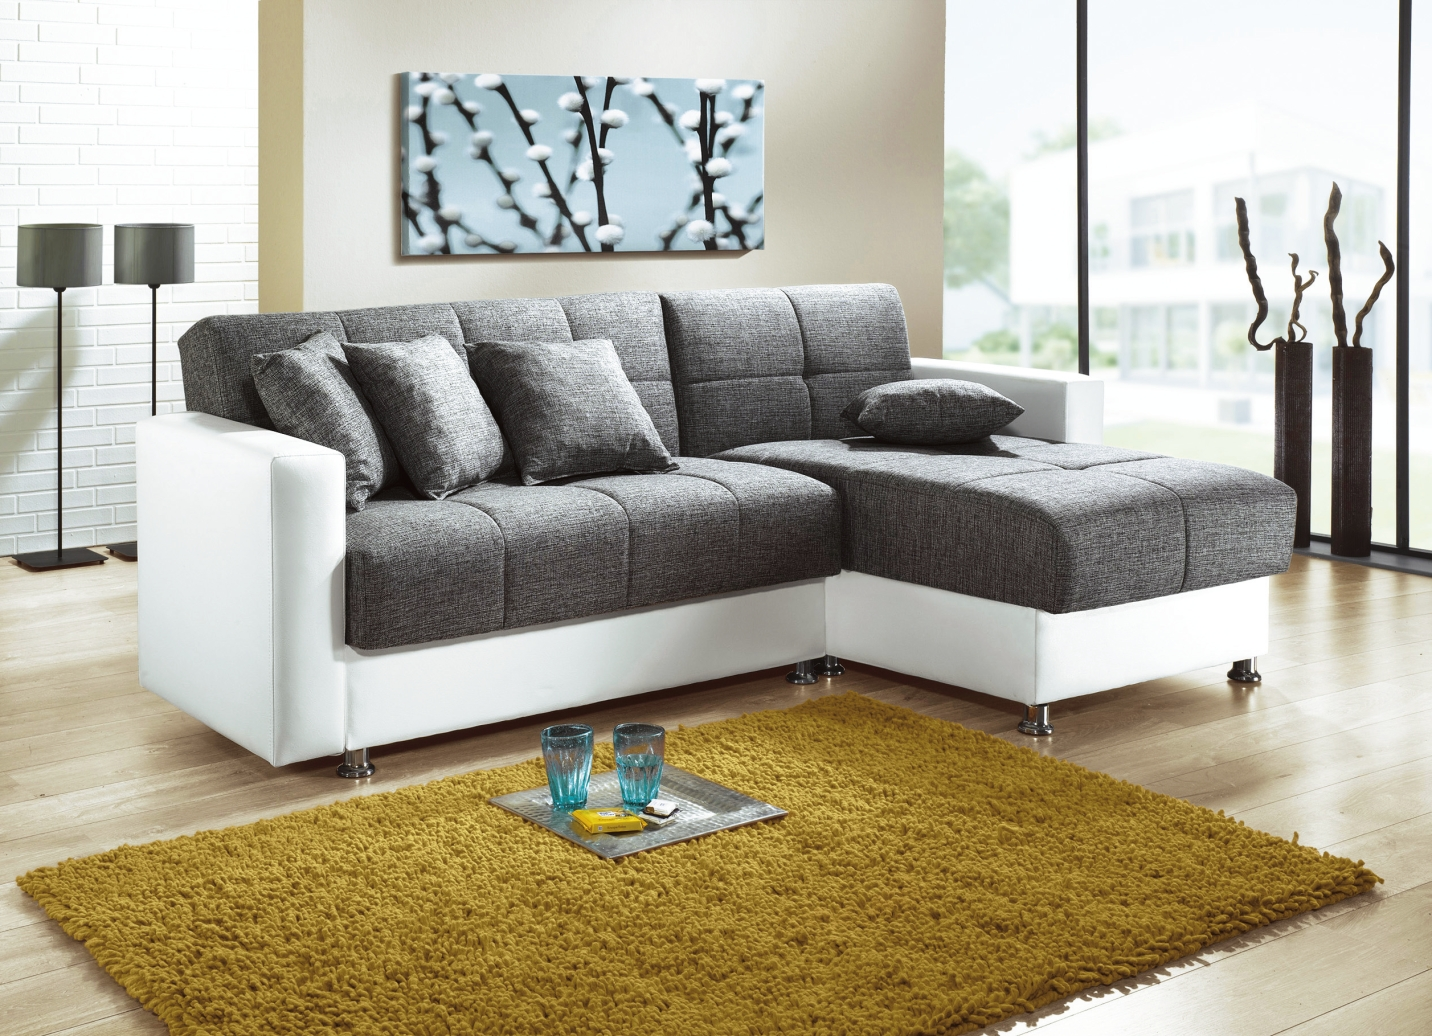 Gallery Of Schn Moderne Polstermbel Ue Zur Bersicht With Bader Sofa